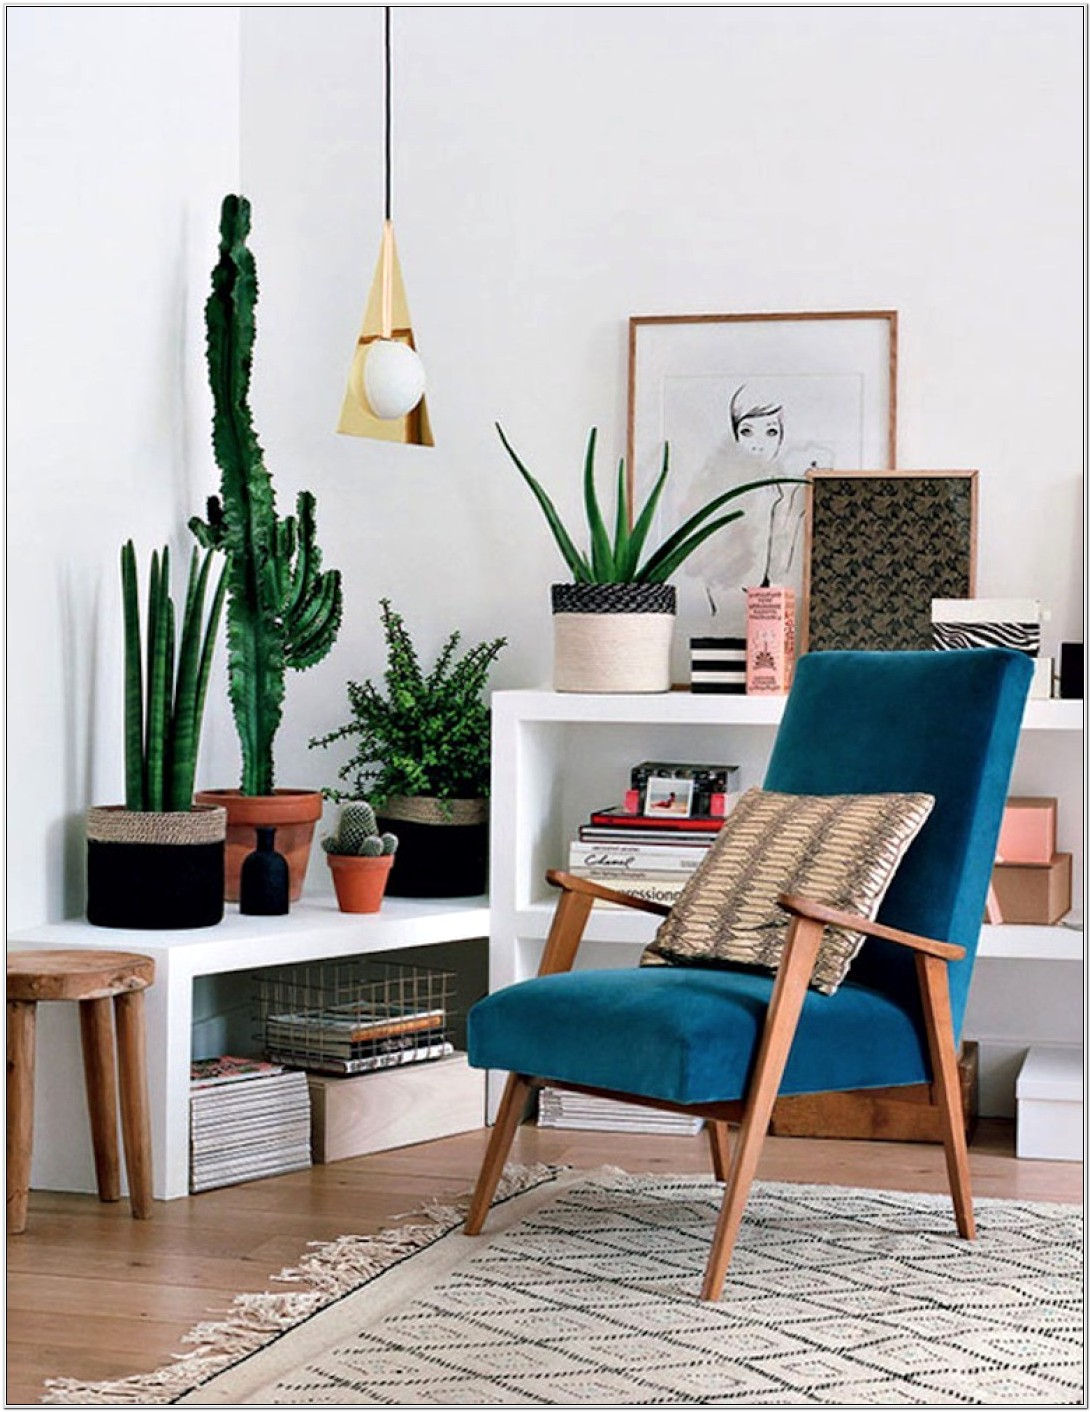 Modern Living Room Ideas With Plants